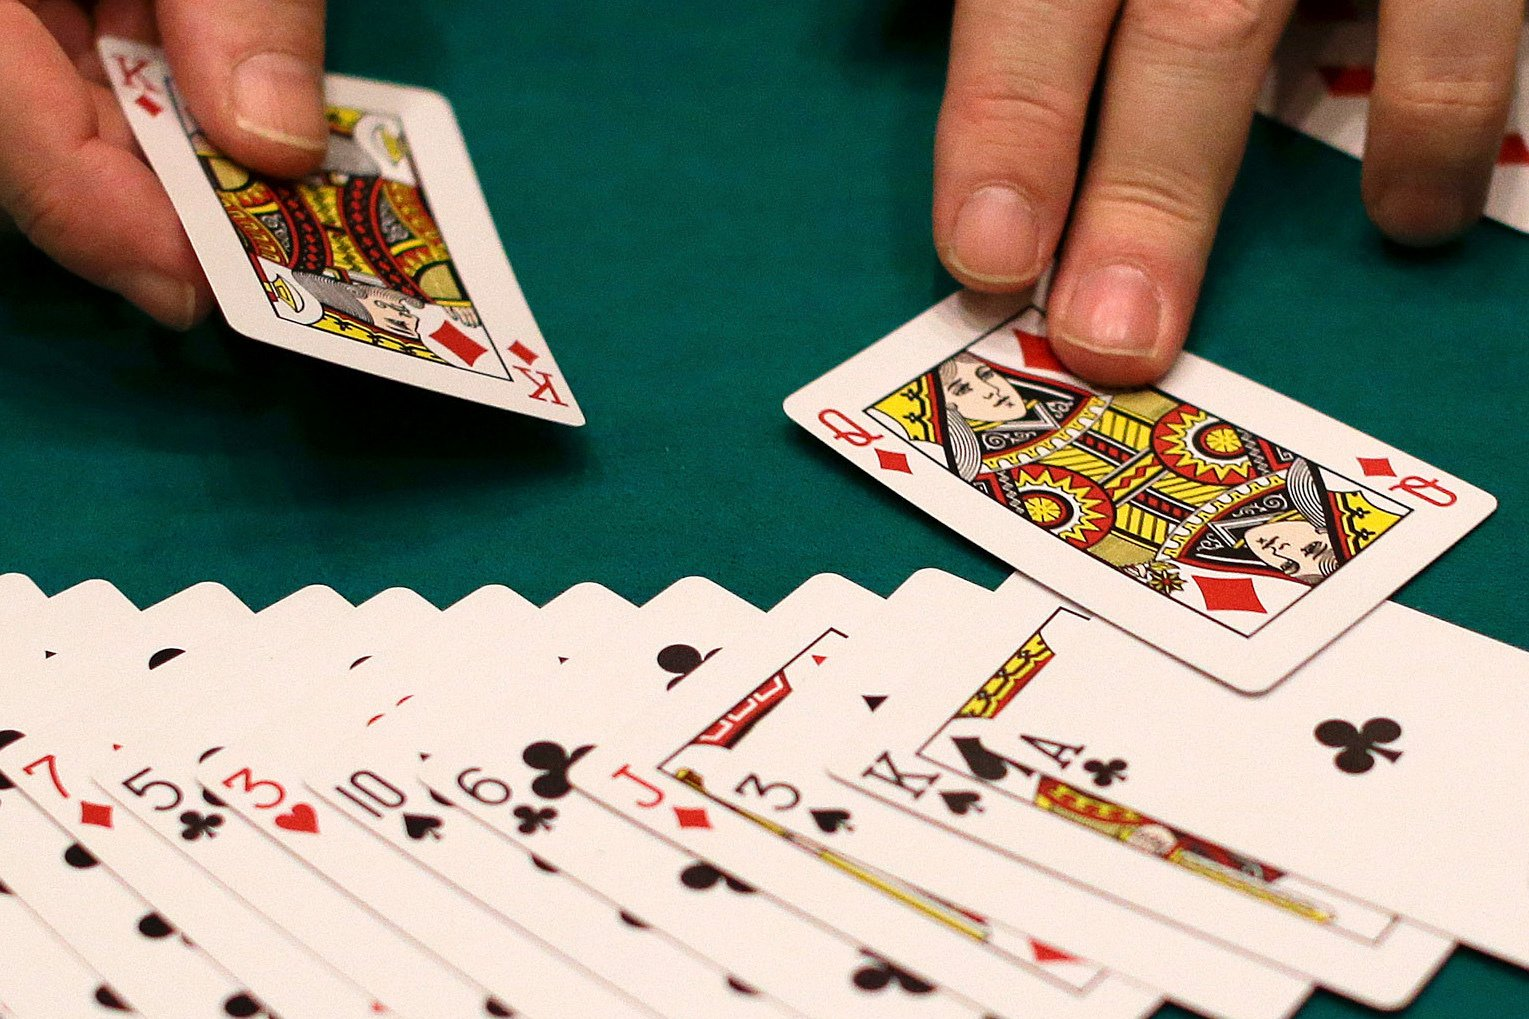 Winners overlook rigged games' lack of fairness, study finds